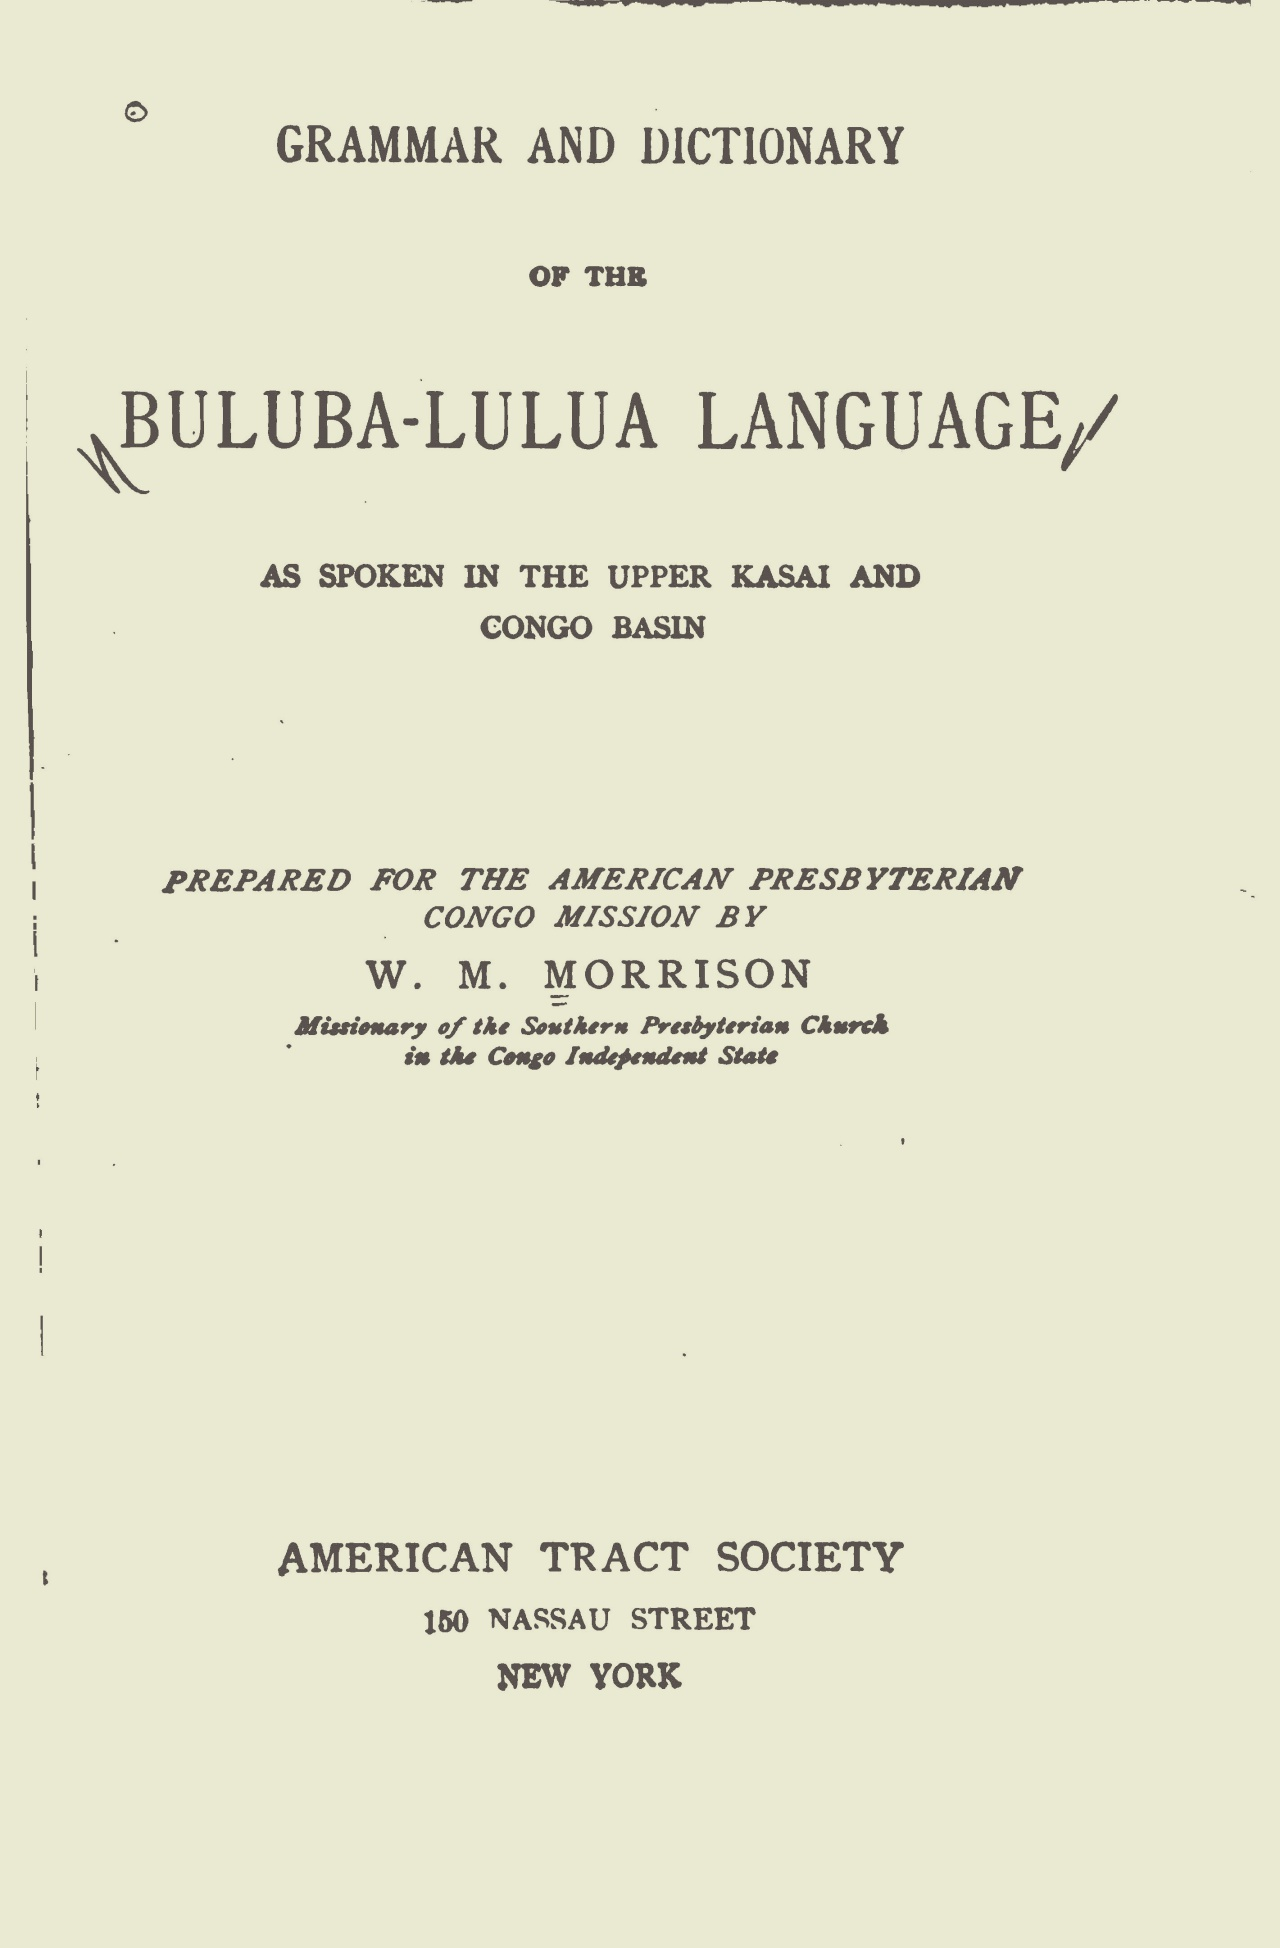 Morrison, William McCutchan, Grammar and Dictionary of the Buluba-Lulua Language Title Page.jpg